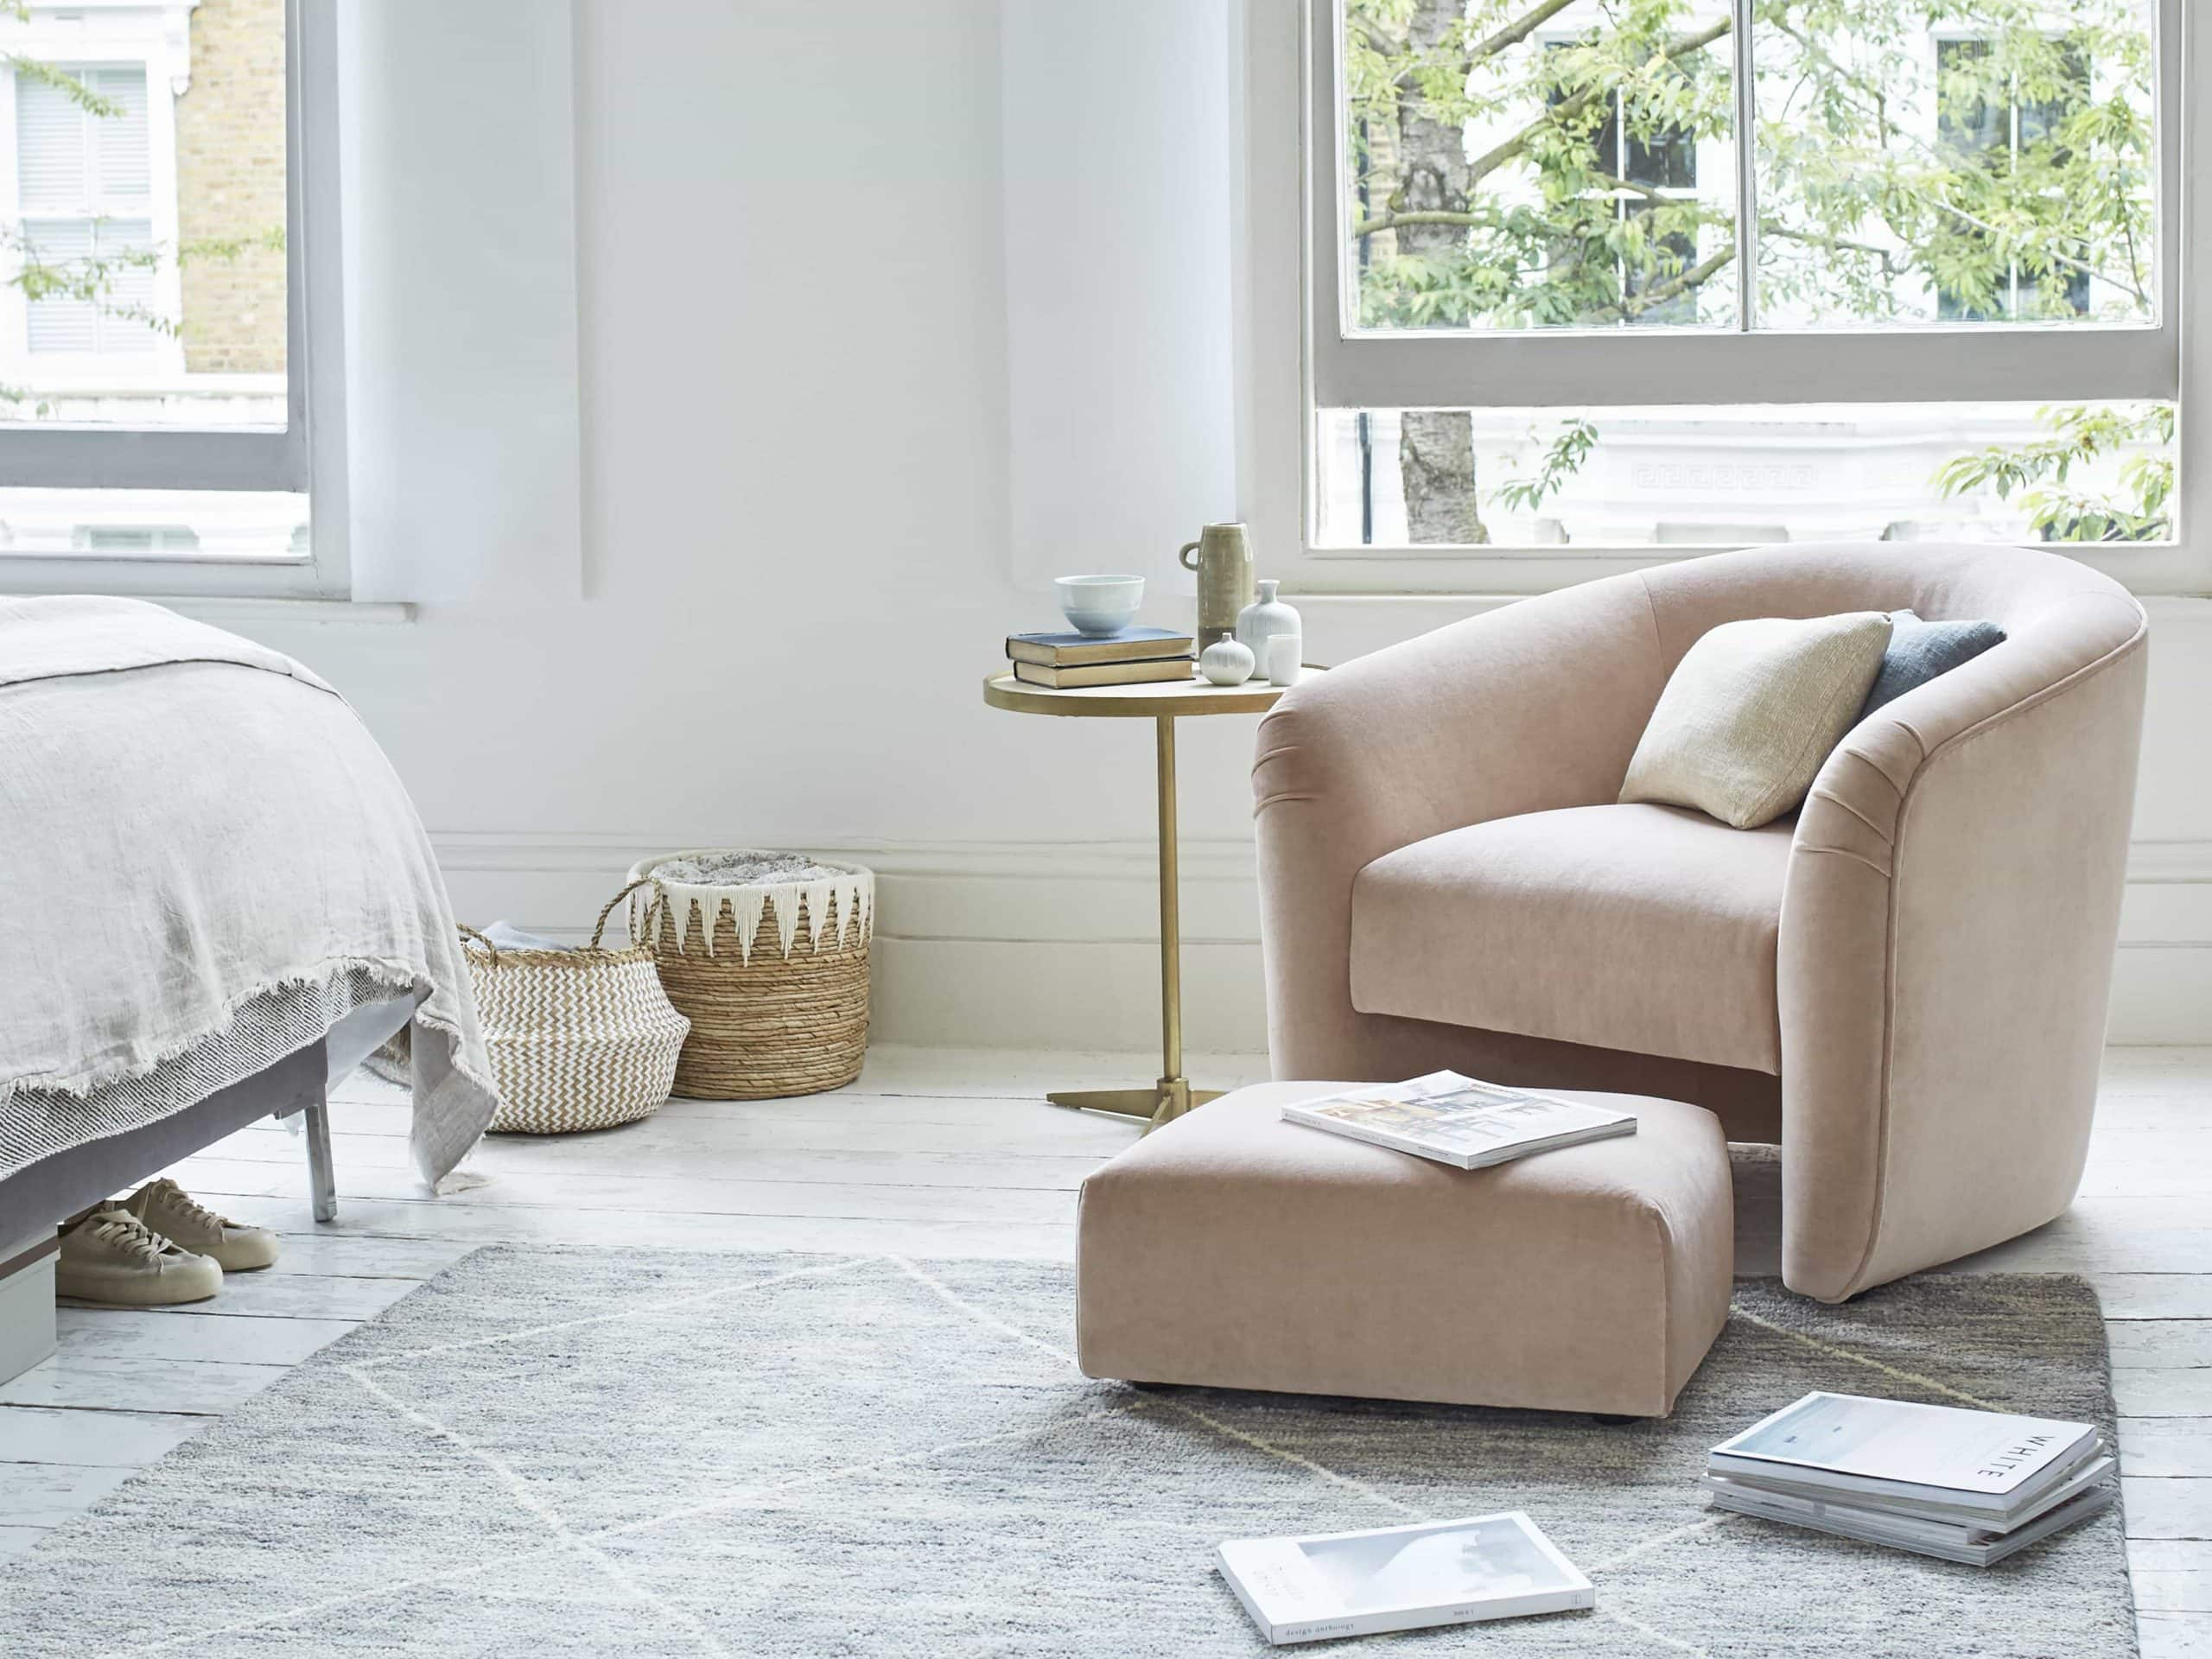 blush pink armchair with matching ottoman in bedroom corner white floors